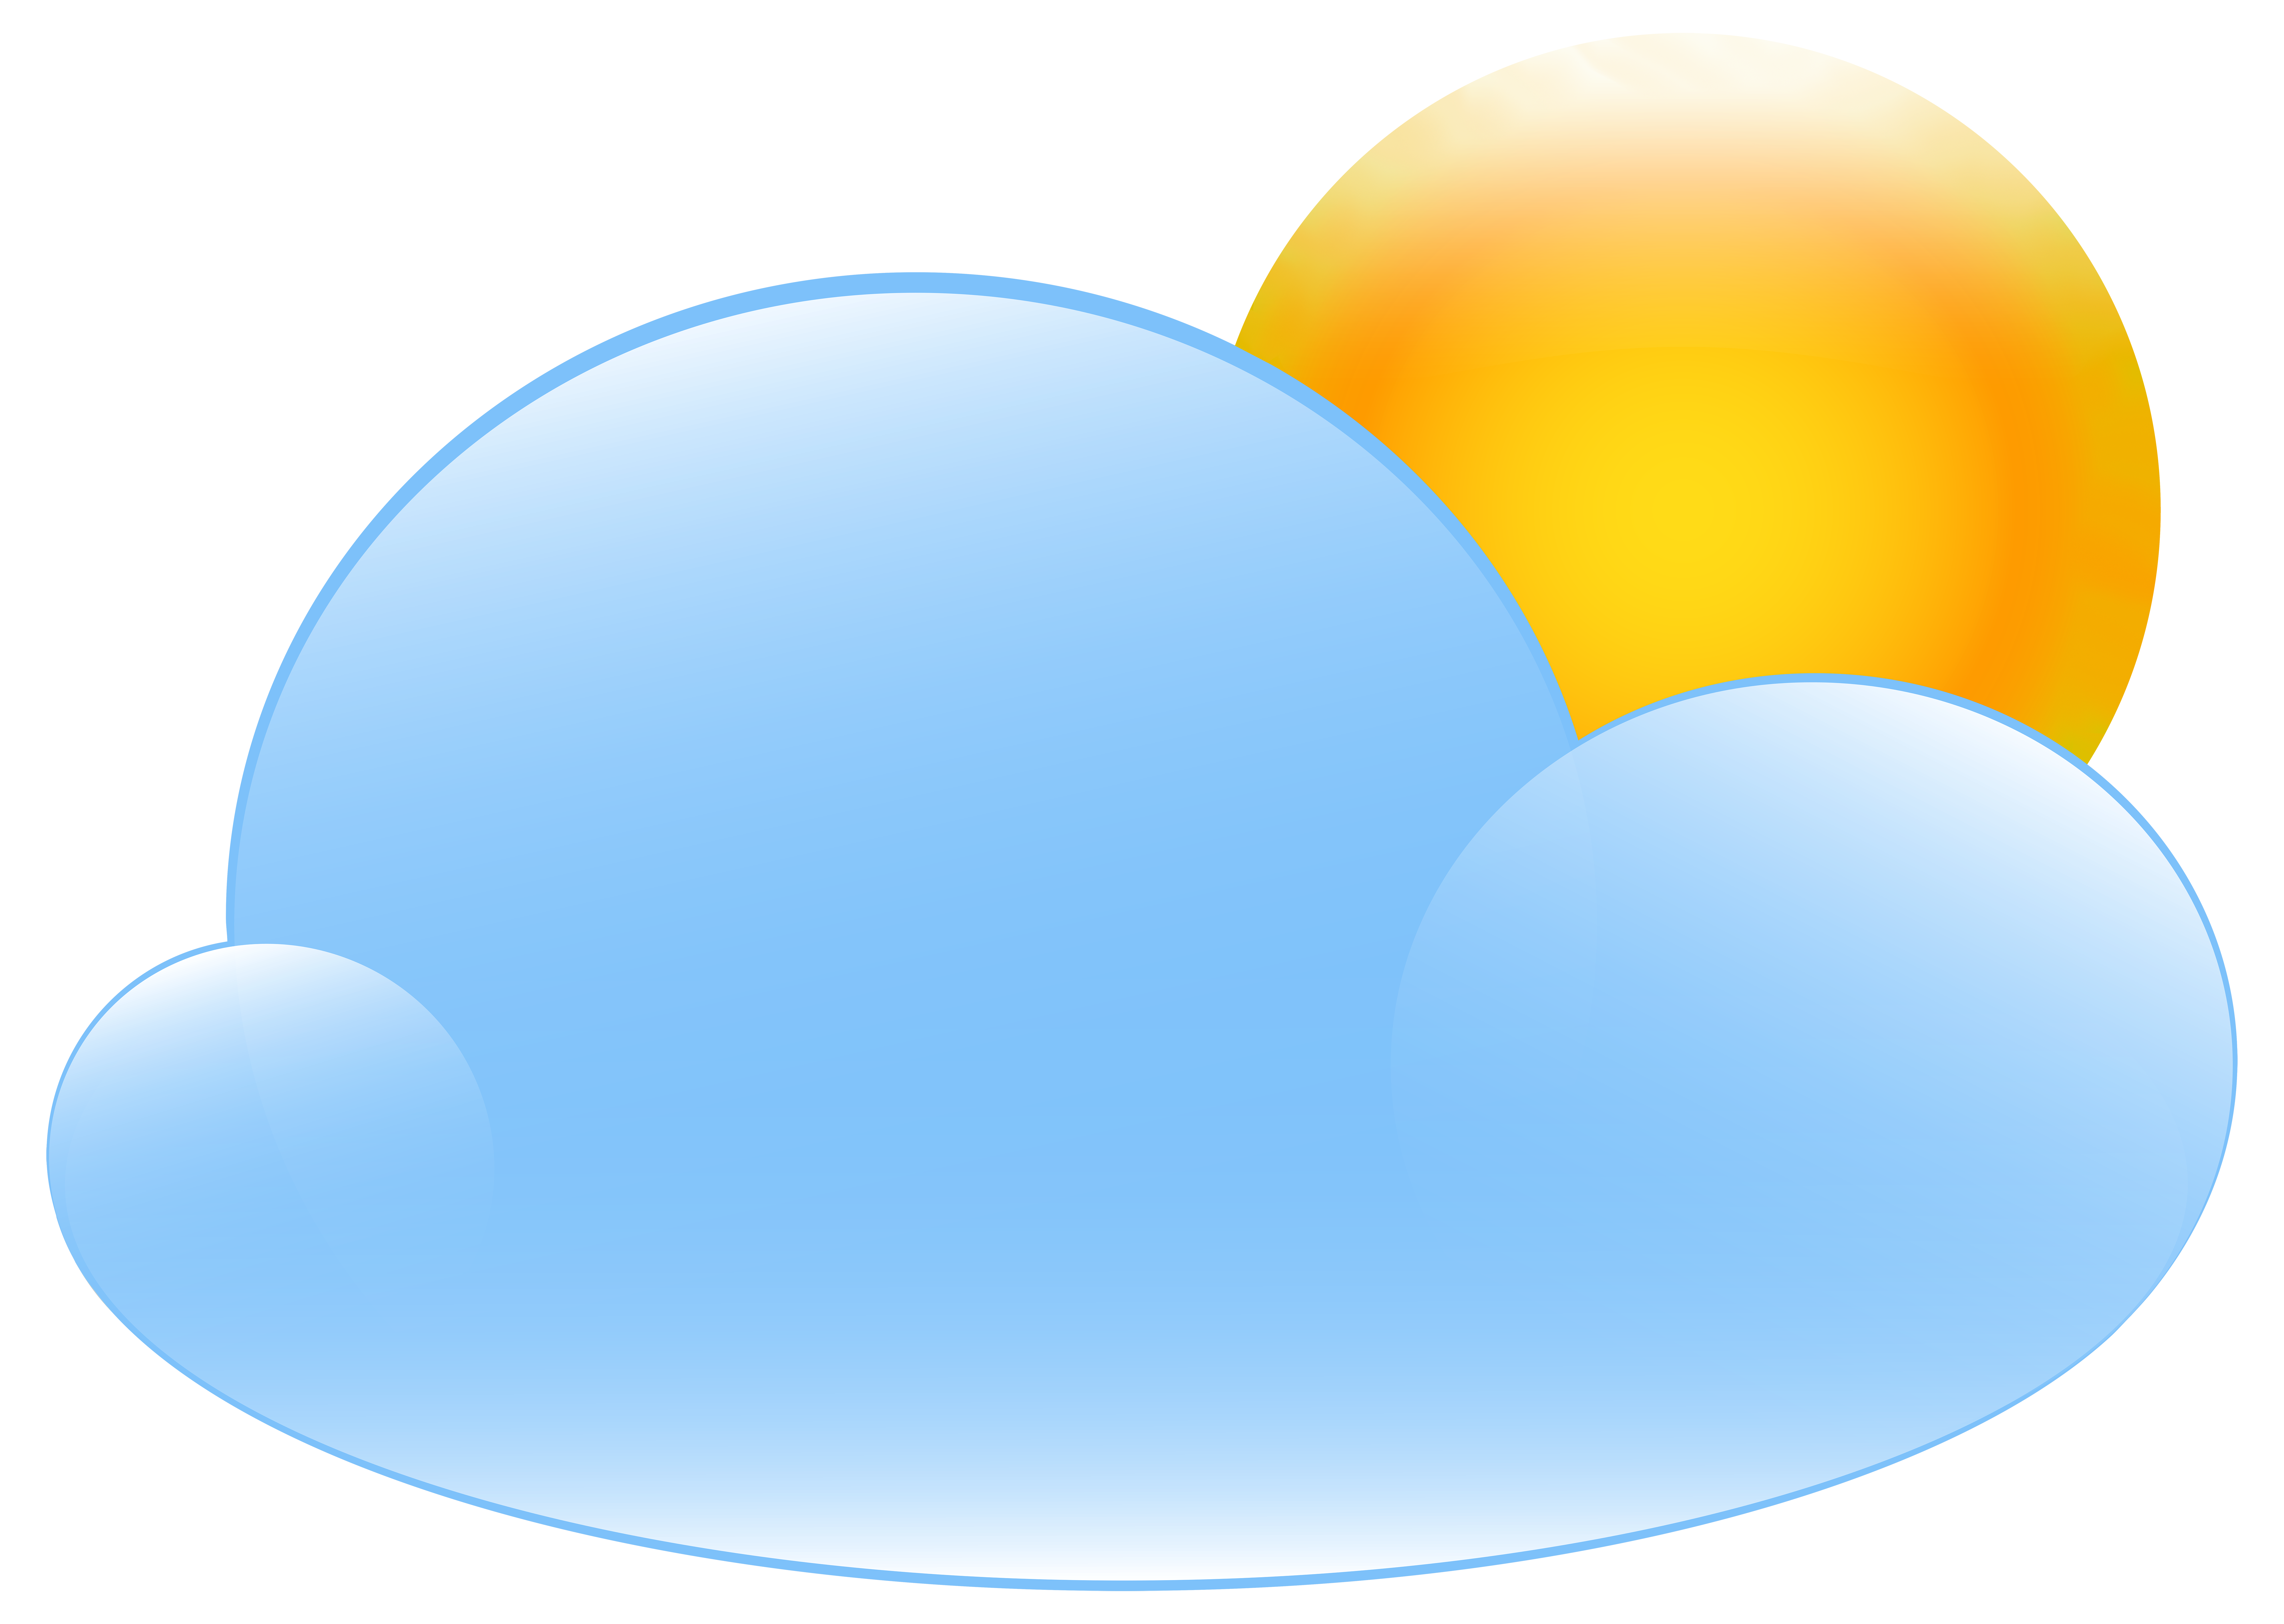 Sun through window clipart image black and white Partly Cloudy with Sun Weather Icon PNG Clip Art - Best WEB Clipart image black and white